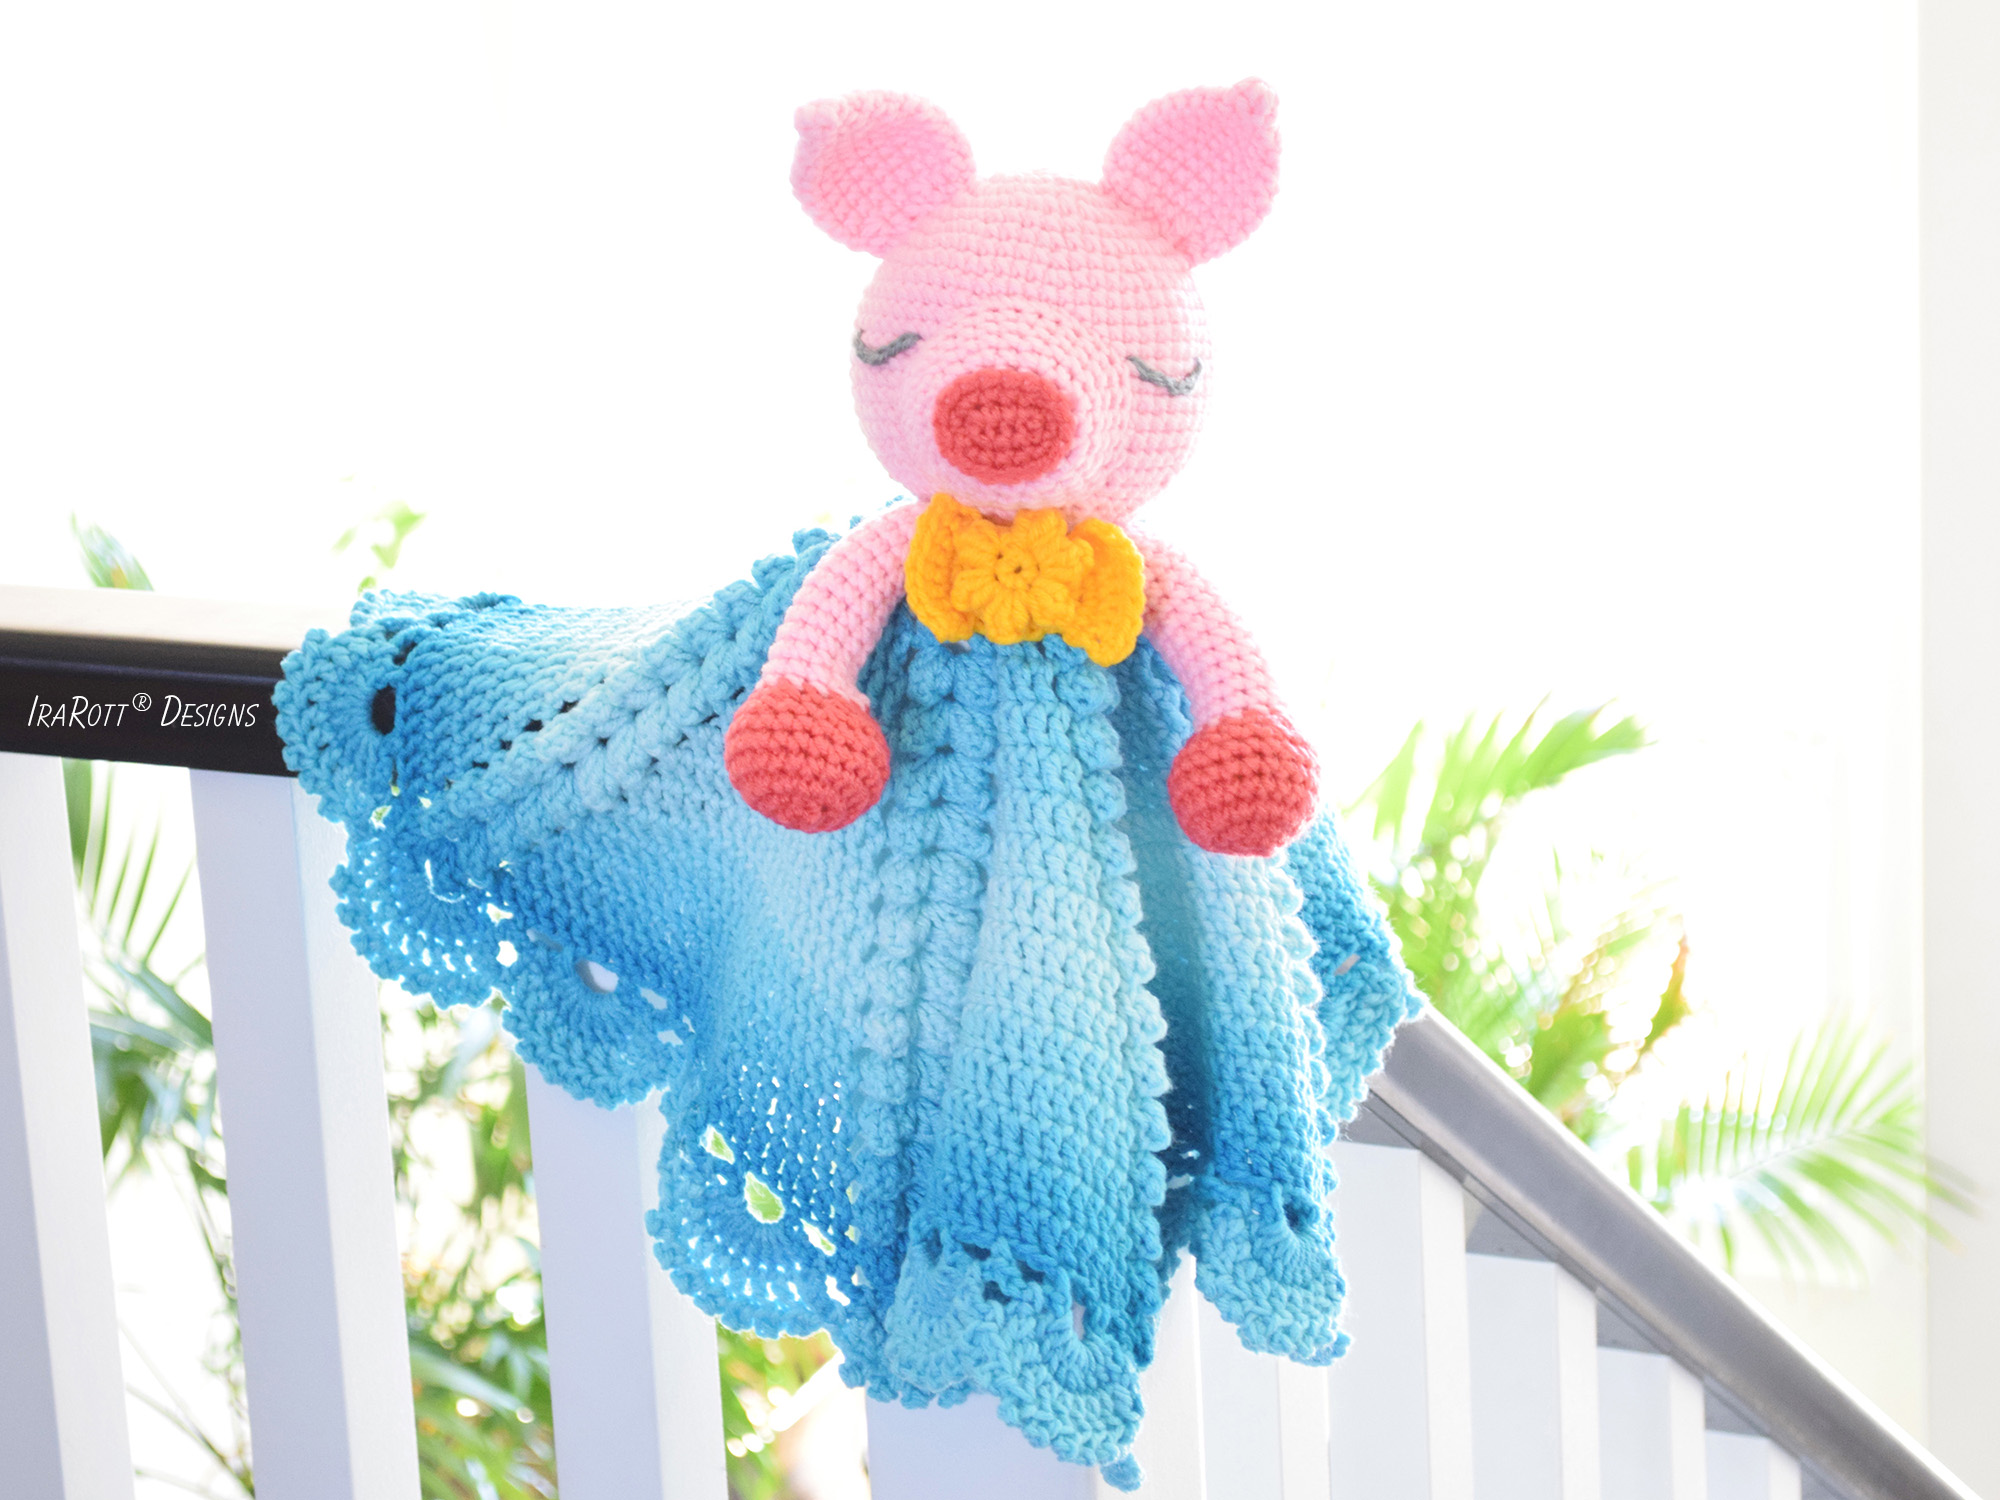 Pinky The Piggy Pig Security Blanket PDF Crochet Pattern With Instant Download by IraRott